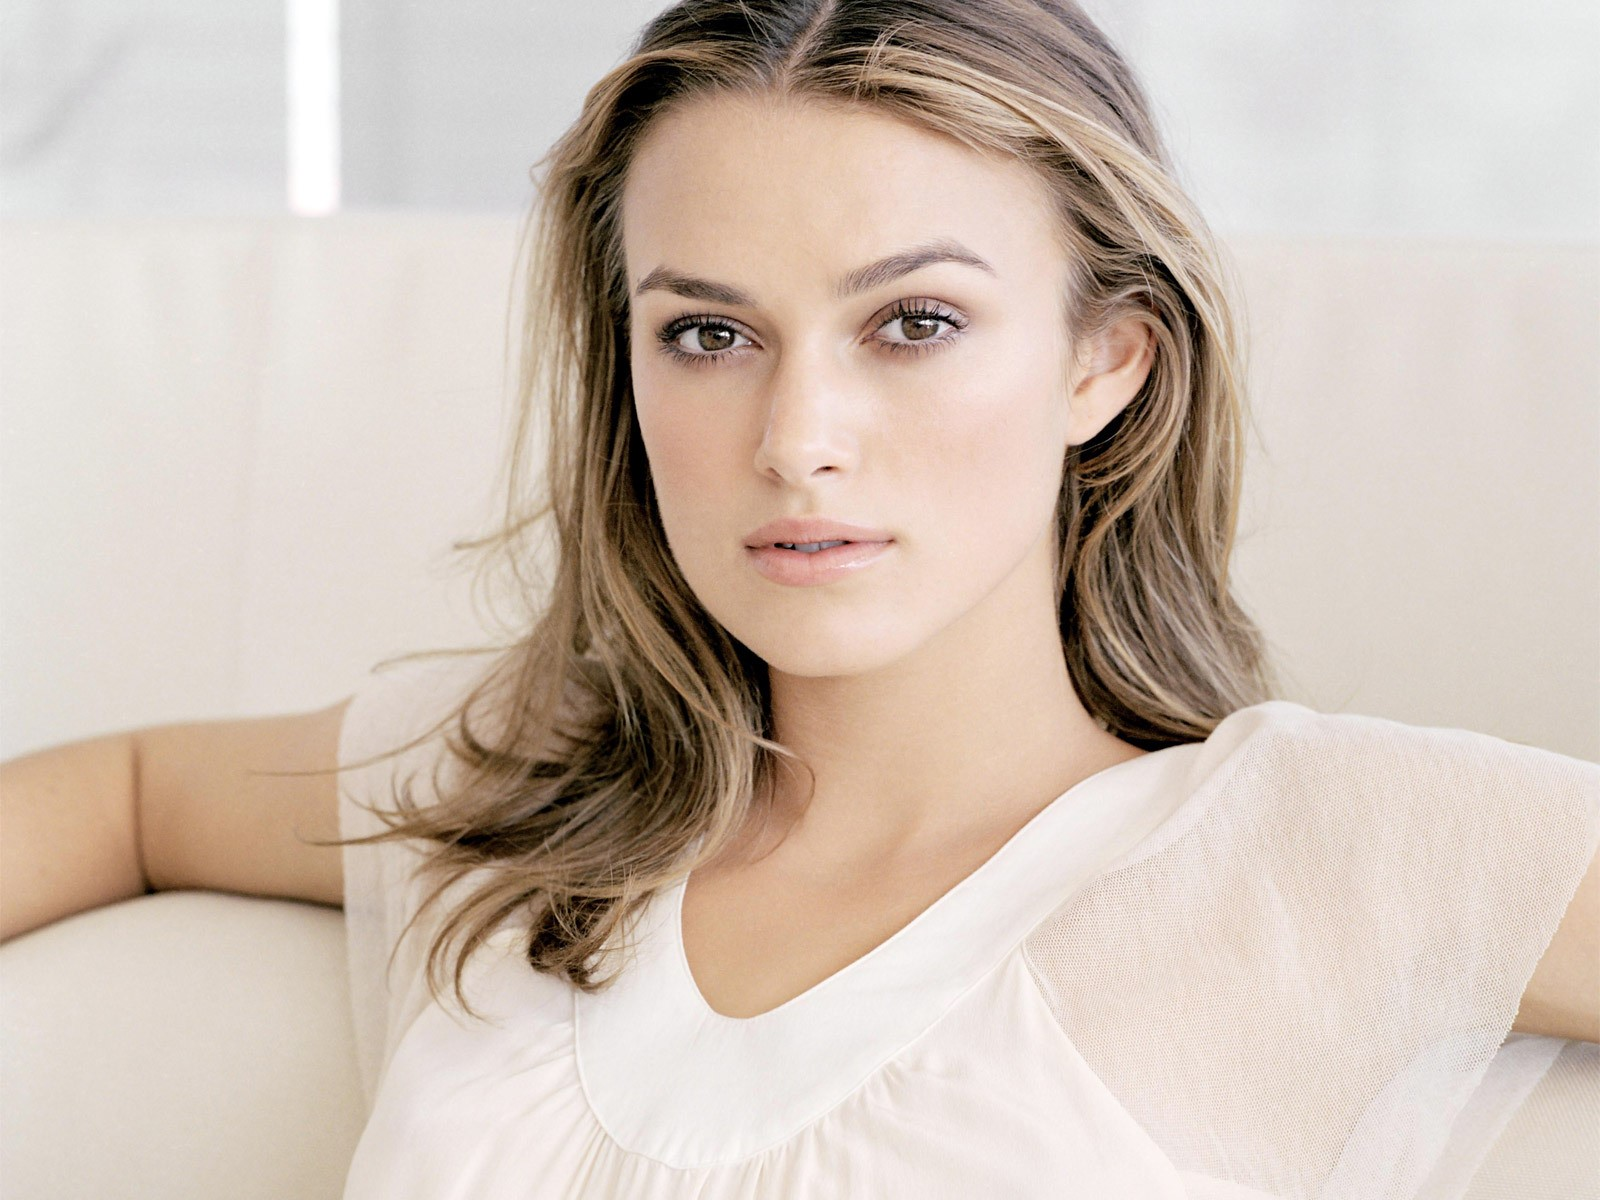 Keira Knightley Wallpapers  Keira Knightley Wallpapers